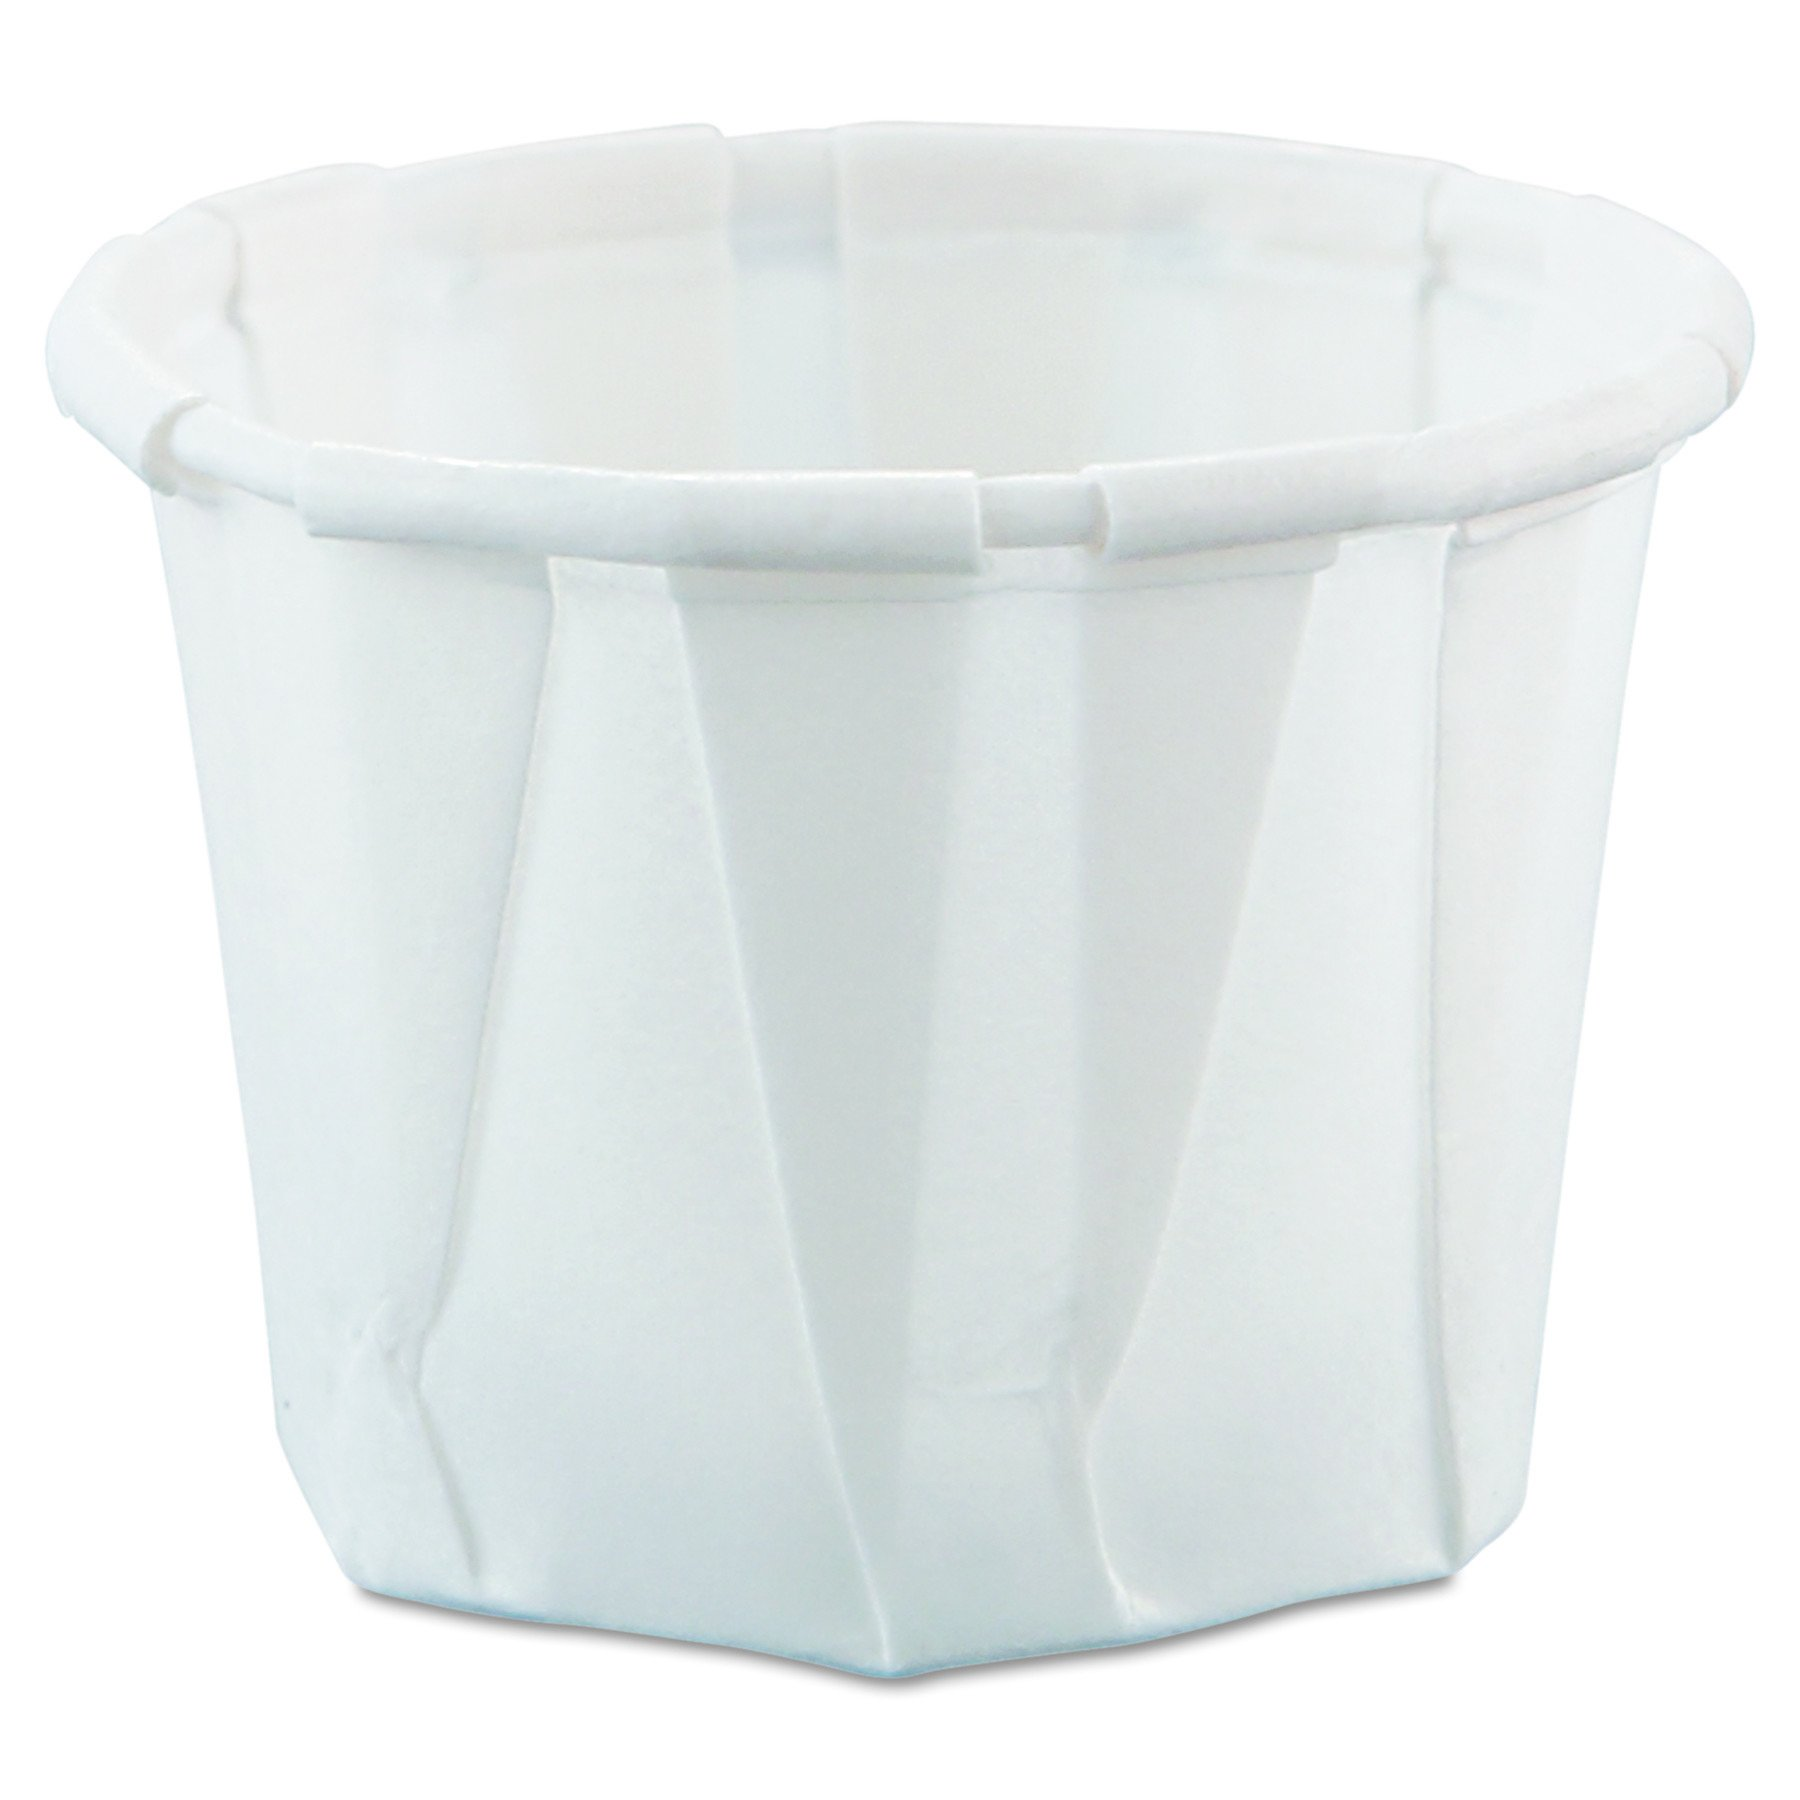 Solo 075-2050 0.75 oz Treated Paper Portion Cup (Case of 5000) by Solo Foodservice